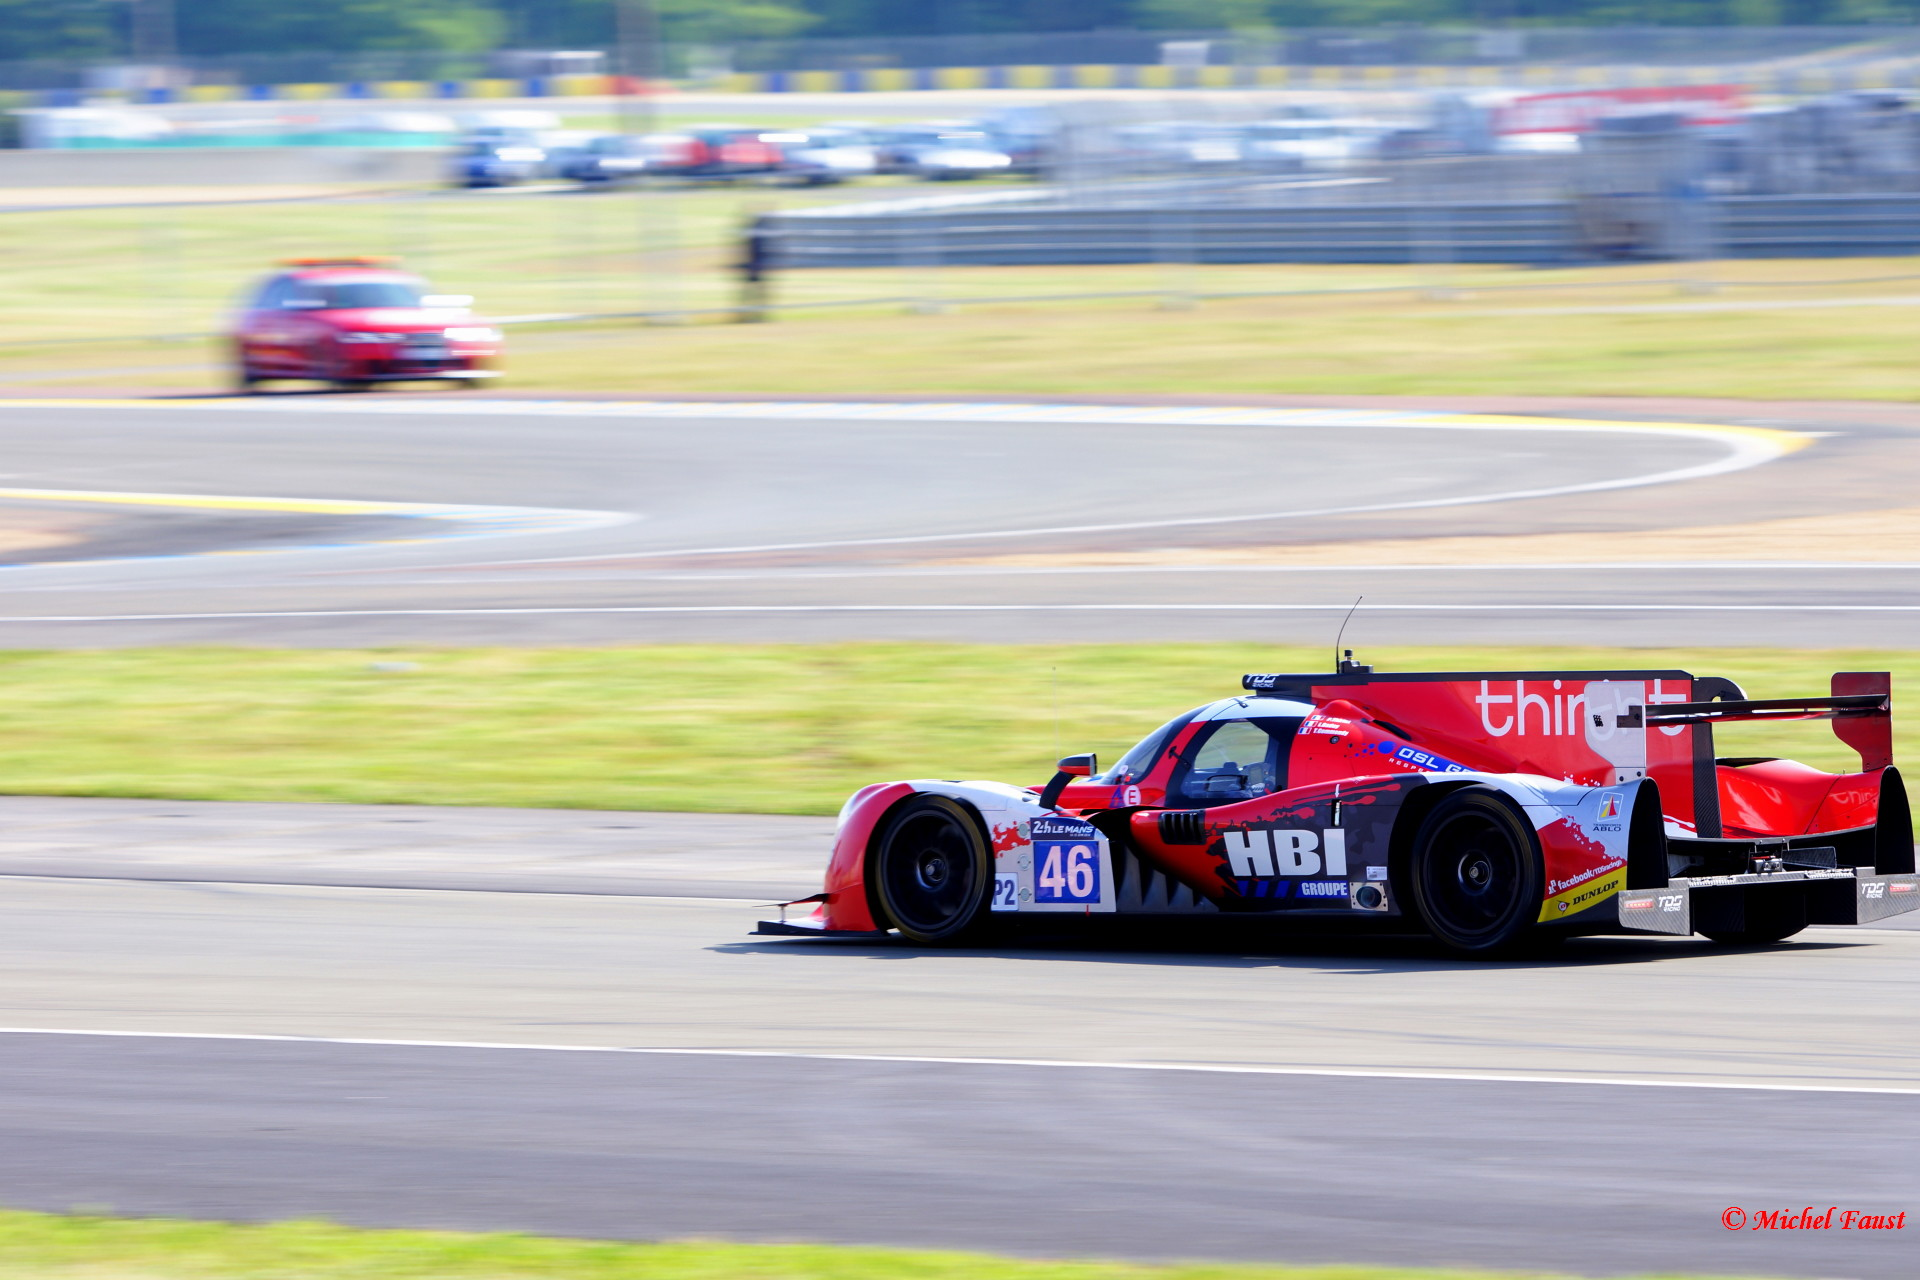 Thiriet by TDS Racing Ligier JS S2 Nissan - Thiriet / Badey / Gommendy - Le Mans 2014 test day